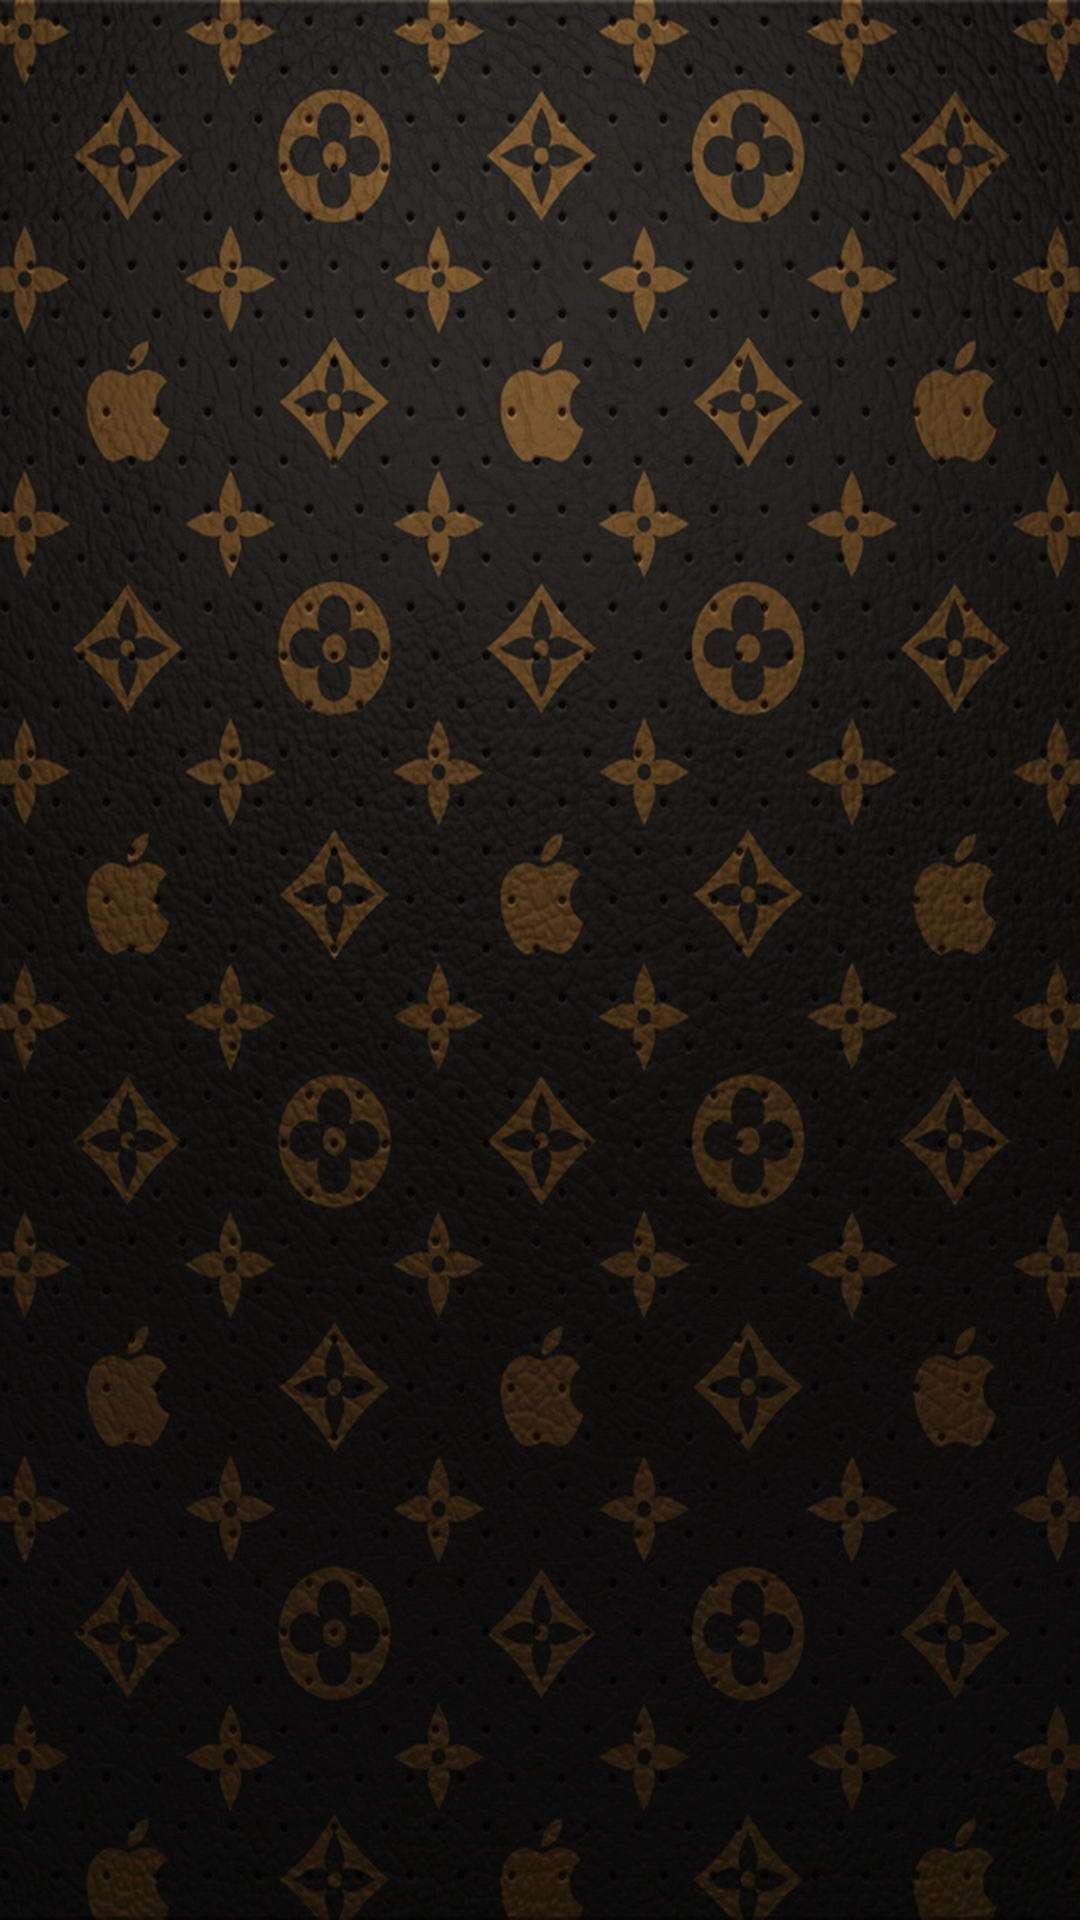 gucci wallpaper iphone 11 pro max